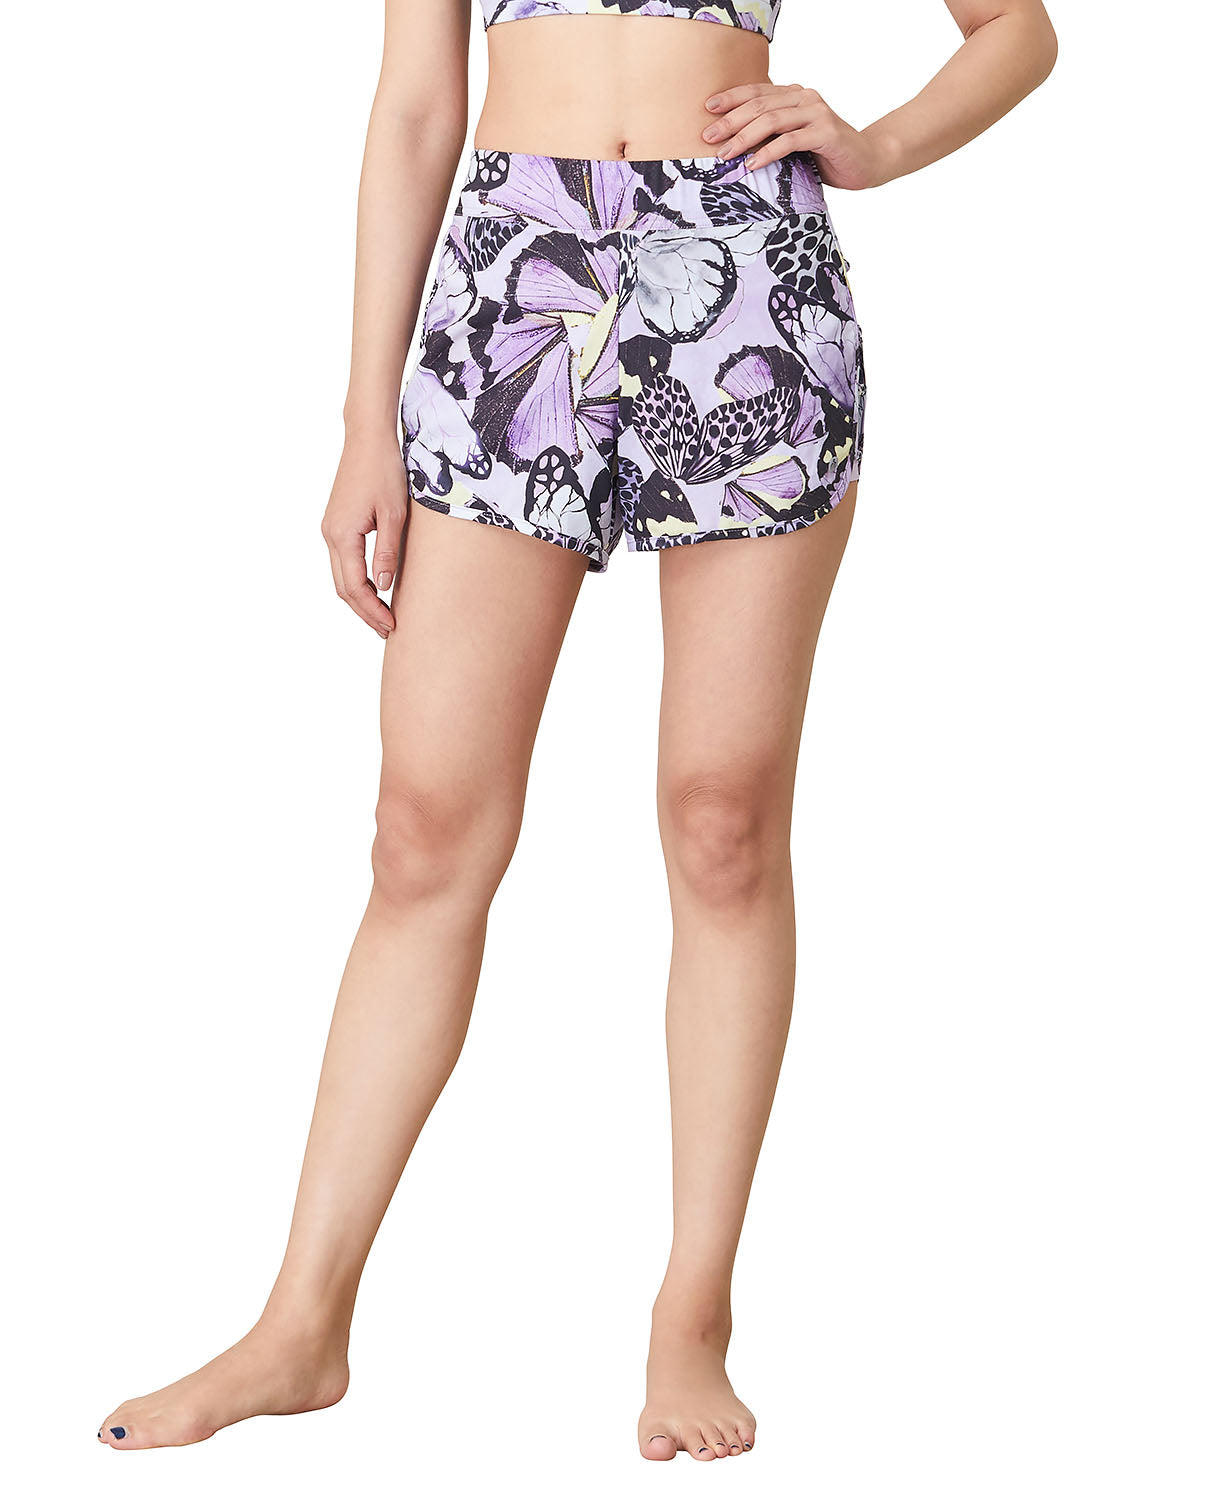 Fly Away Shorts Butterfly